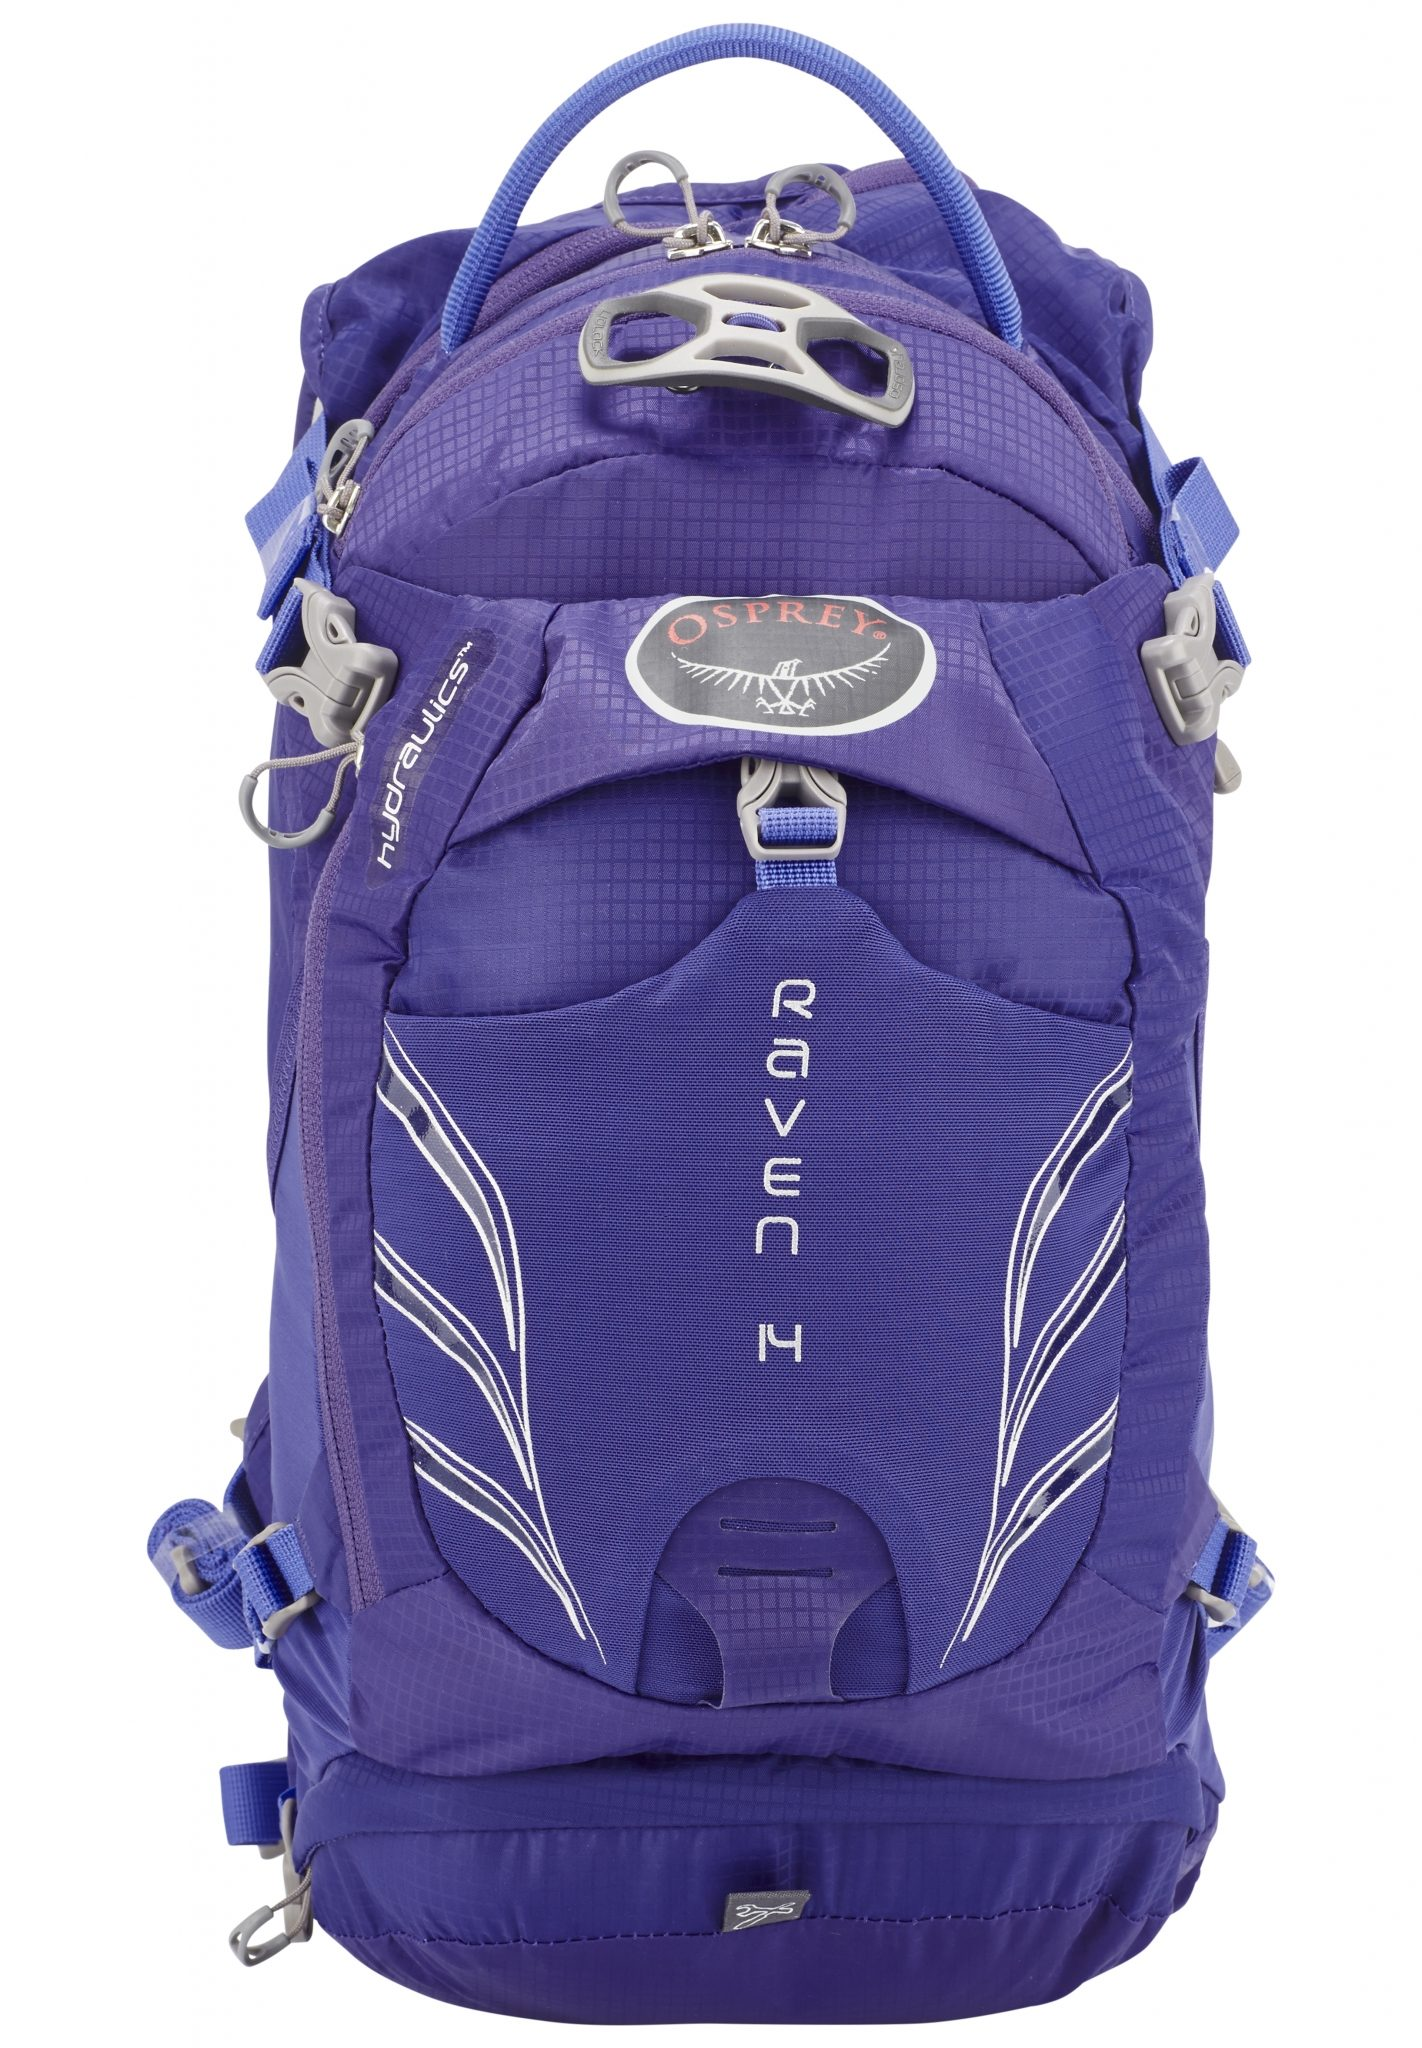 Osprey Rucksack »Raven 10 Backpack Women«